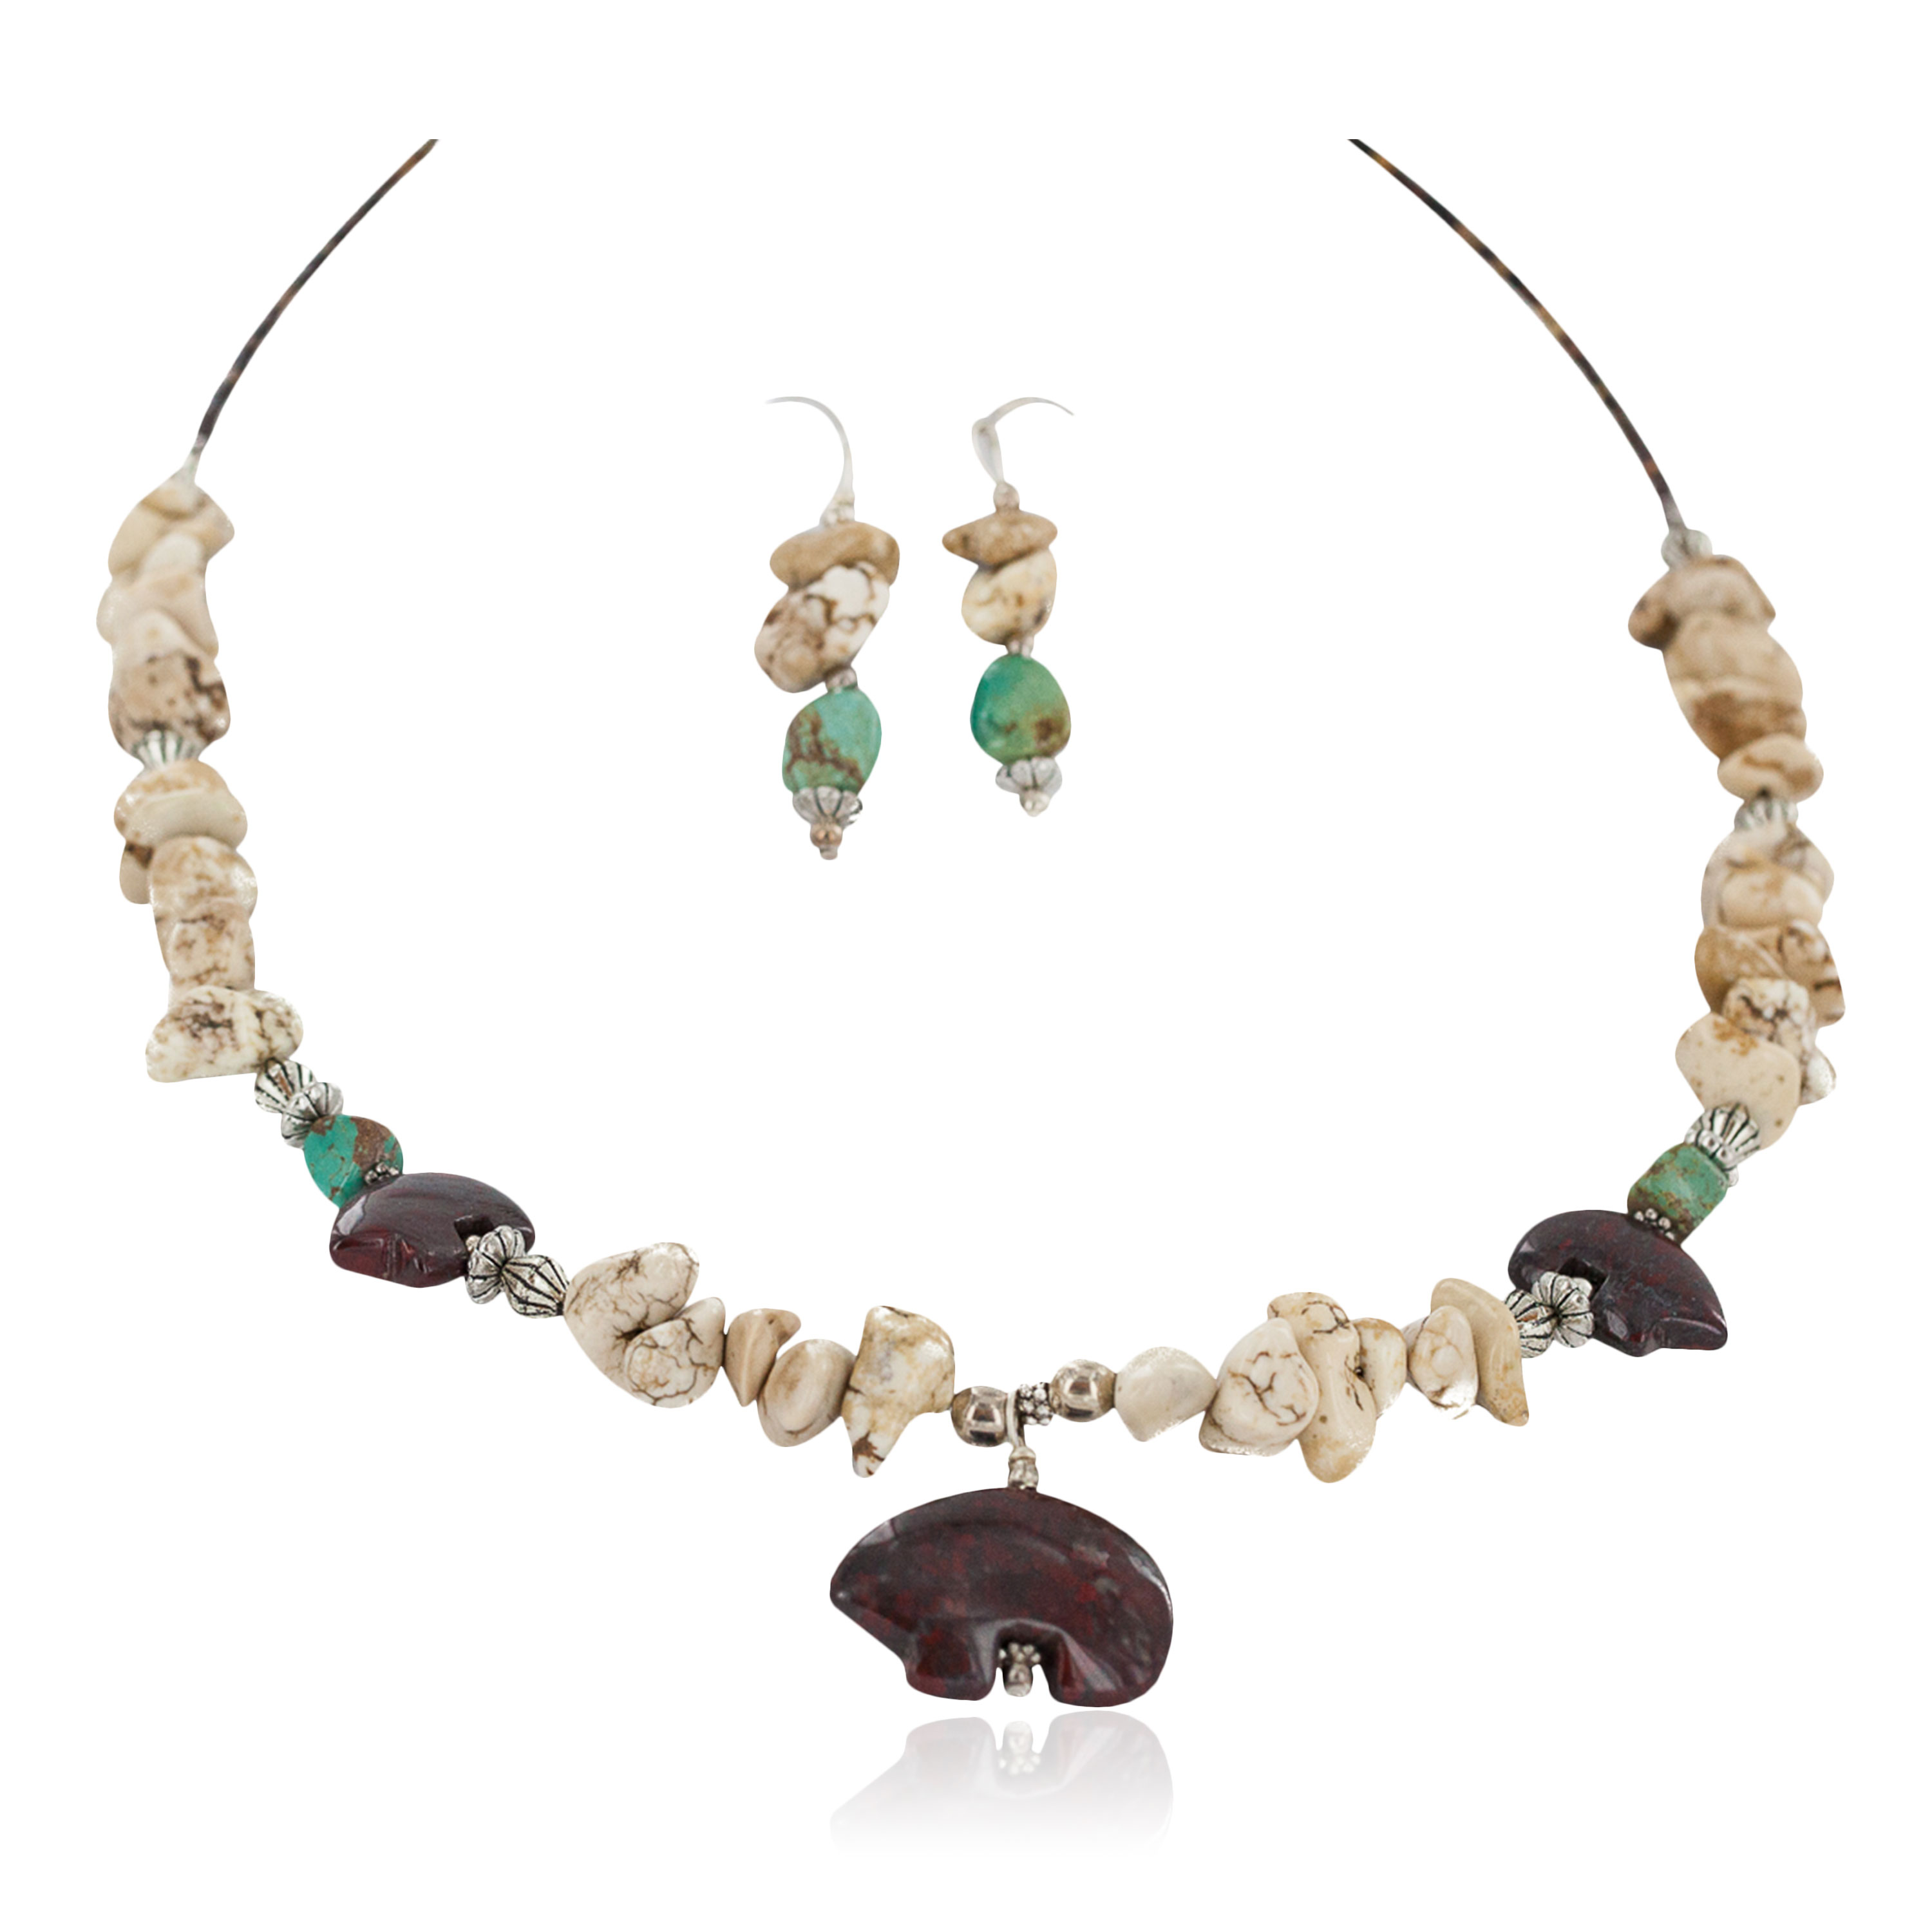 Carved Fetish Bear .925 Sterling Silver Hooks Certified Authentic Navajo White Howlite Red Jasper Native American Set 750209-4-18252-6 Clearance NB160401180346 750209-4-18252-6 (by LomaSiiva)